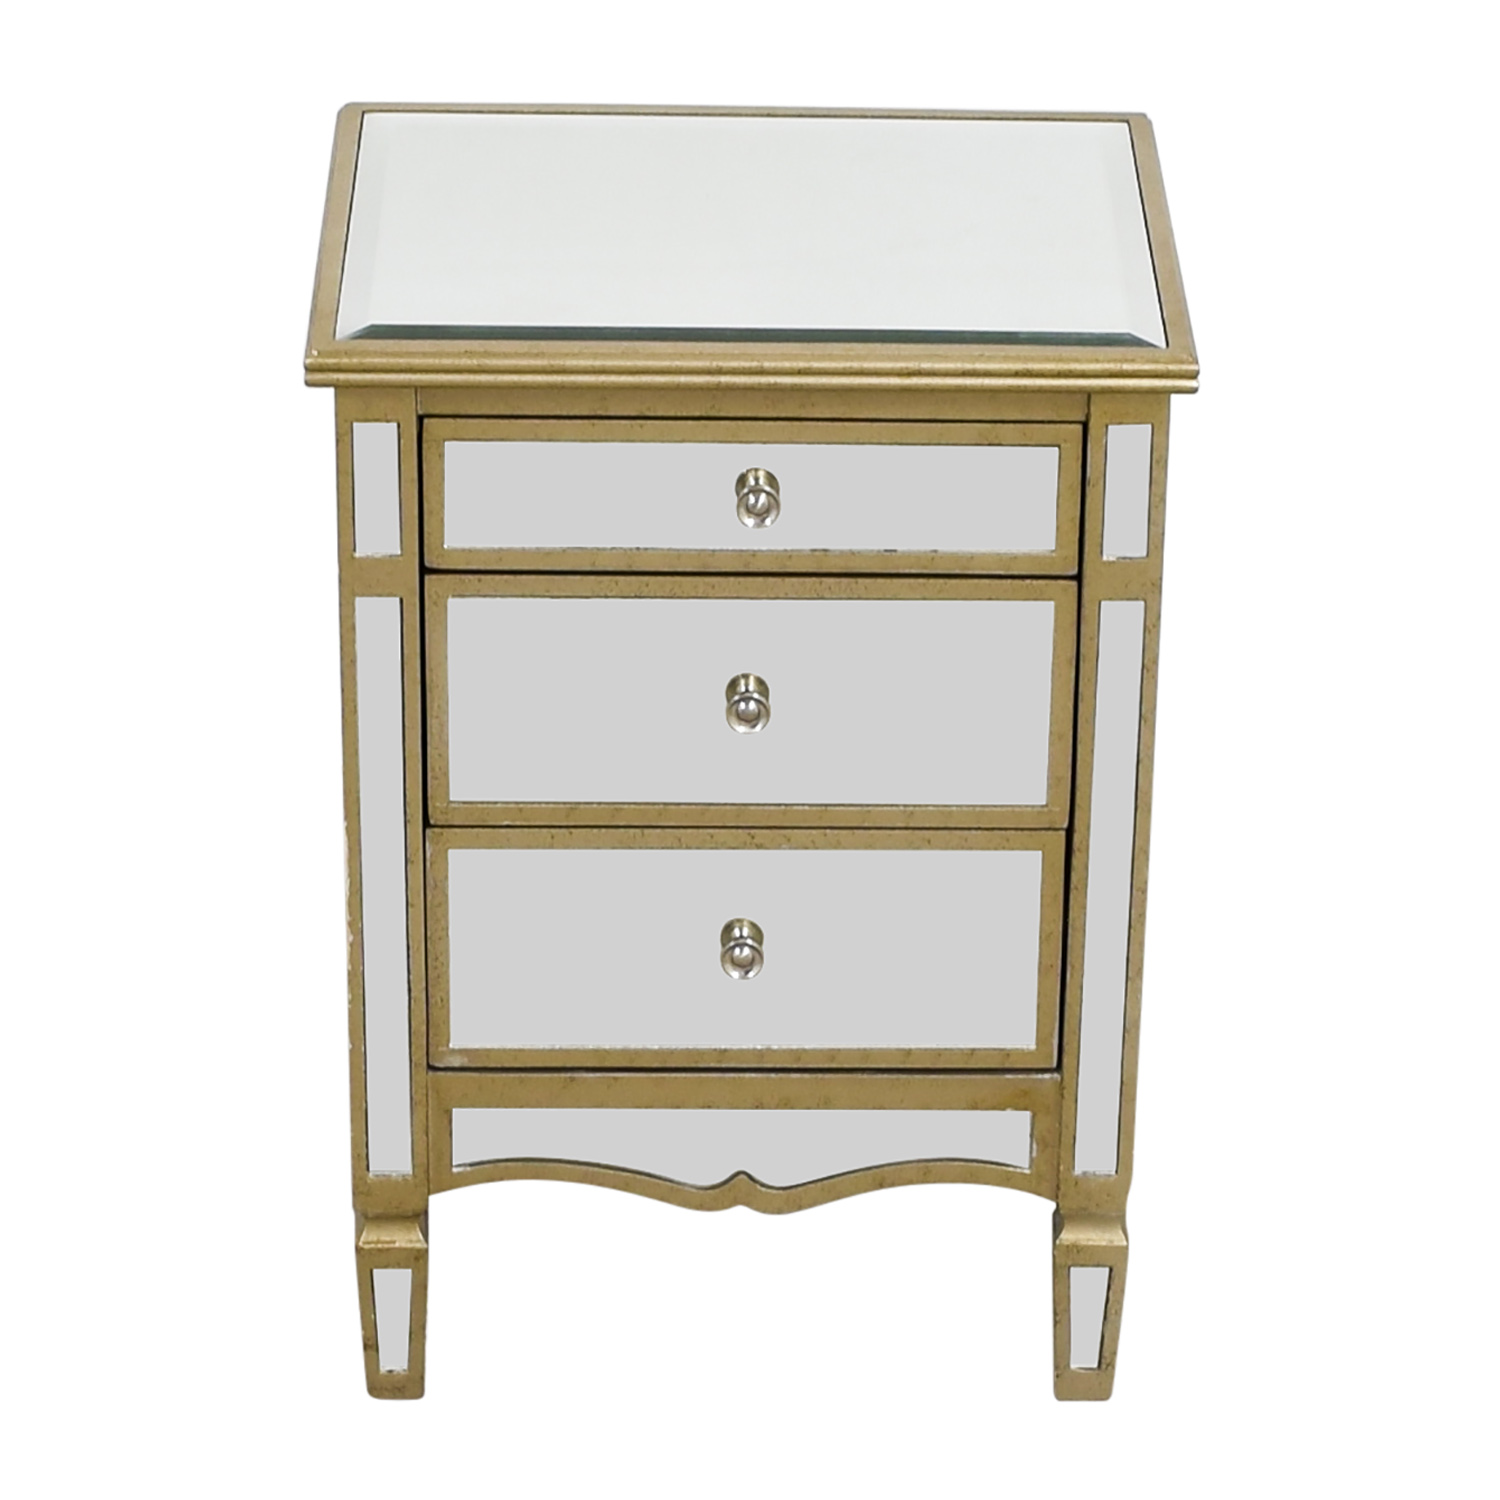 Pier 1 Imports Pier 1 Imports Three Drawer Night Stand nj